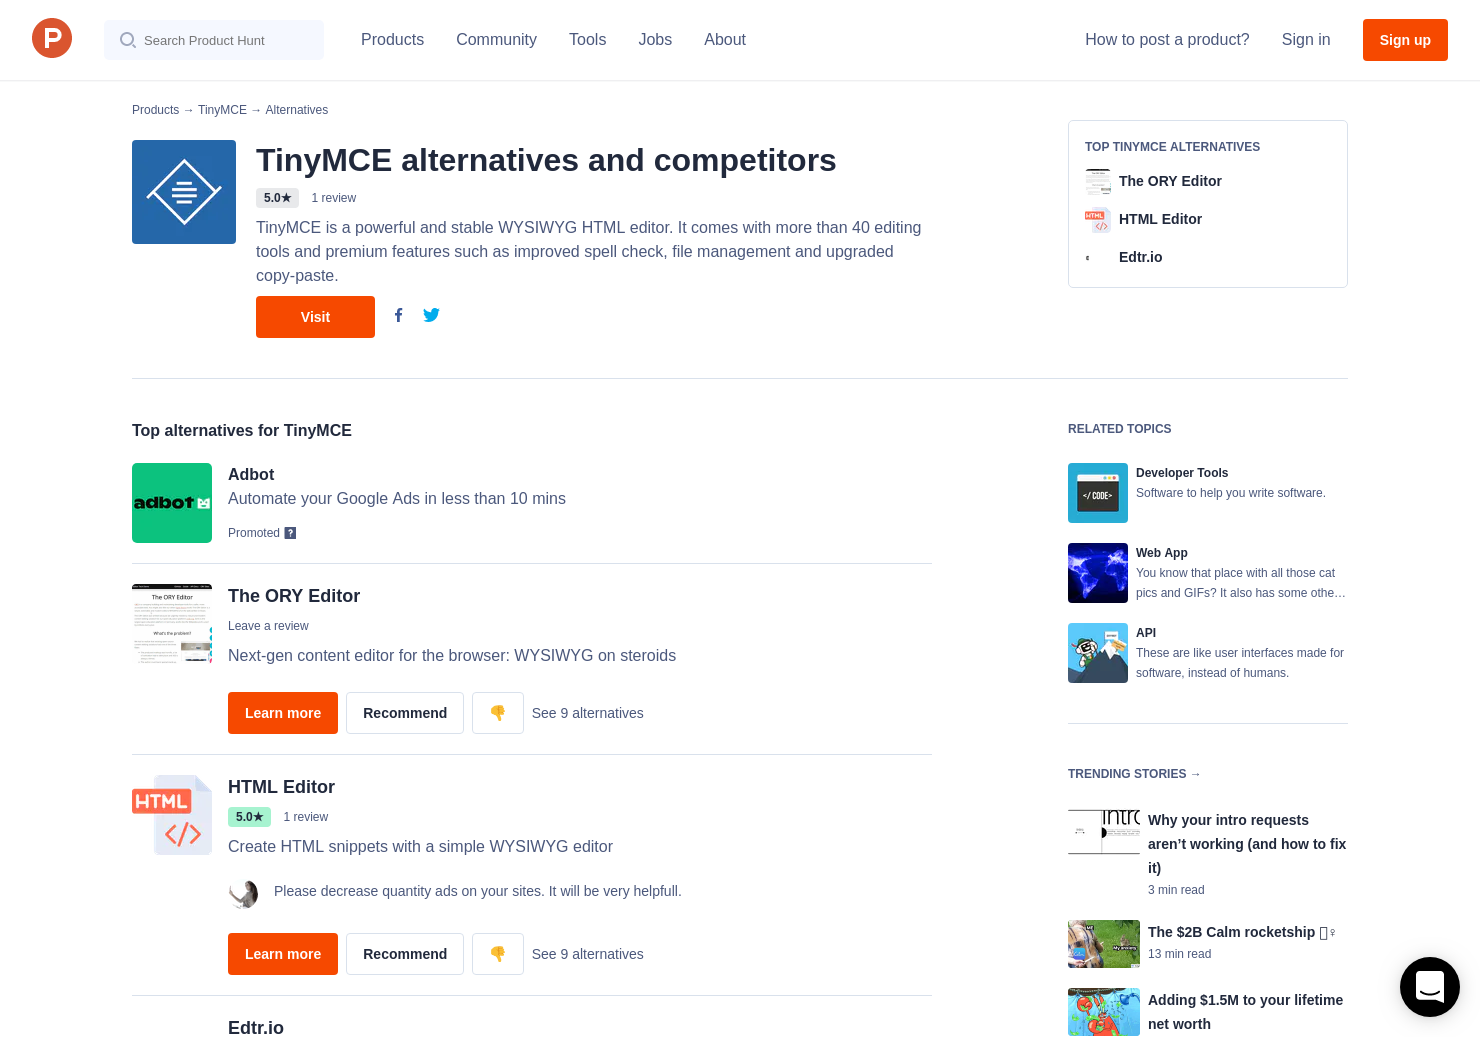 6 Alternatives to TinyMCE | Product Hunt